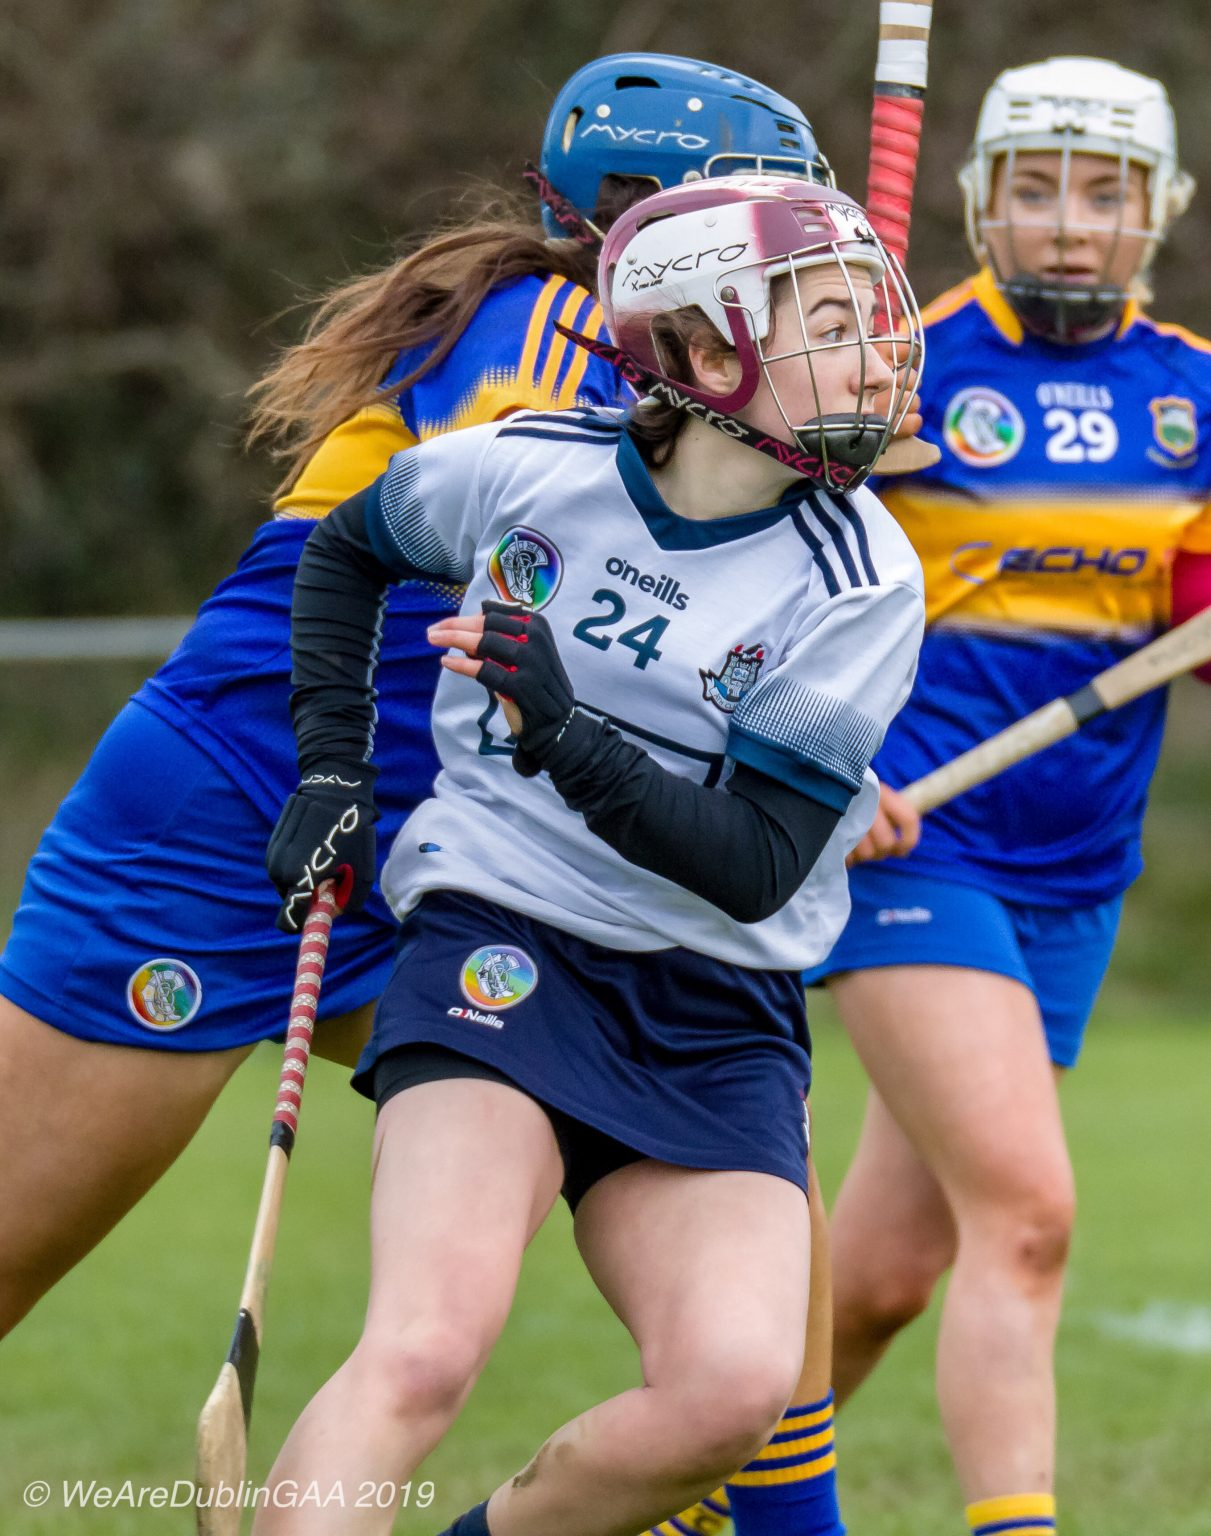 Dublin Minor Camogie Player In a White jersey with navy trim, navy skort and maroon and white helmet tries to evade a Tipperary player in a dark blue jersey with yellow band, dark blue skort and dark blue helmet during their Minor A Championship game